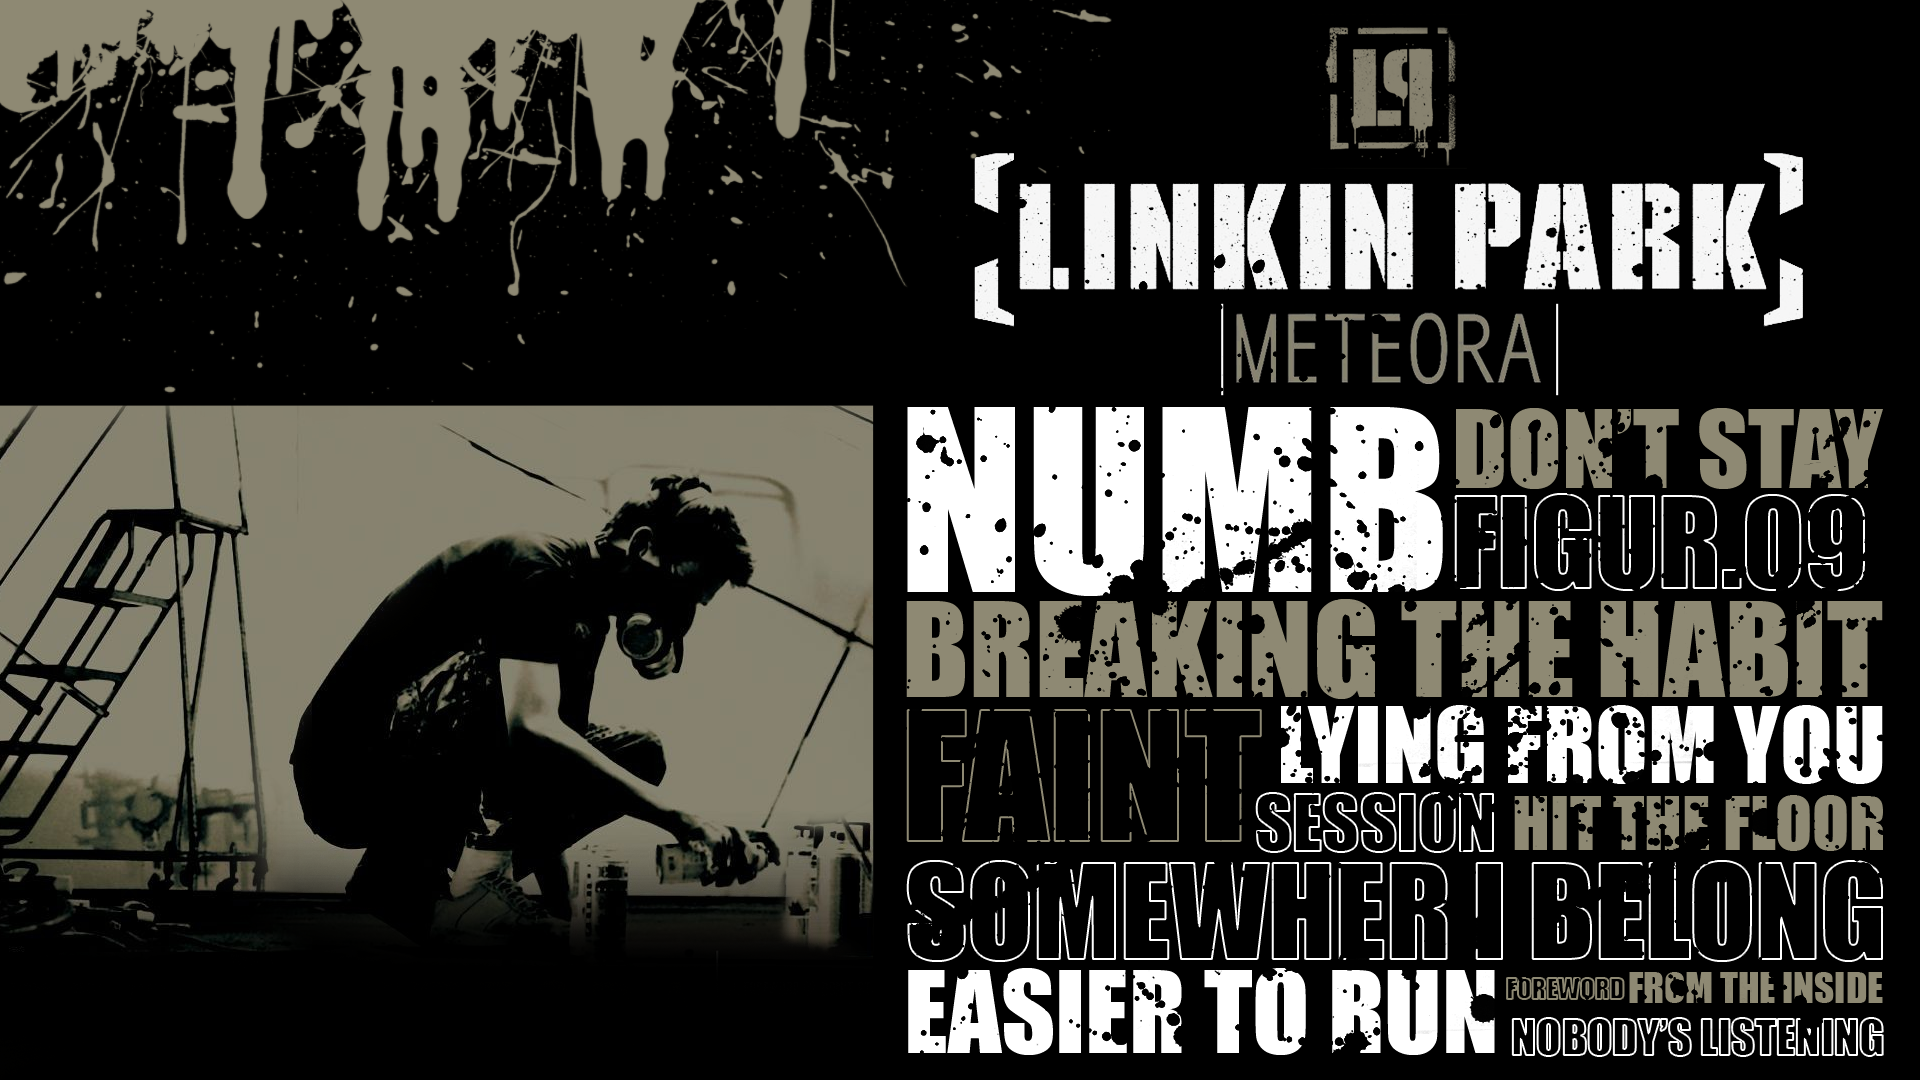 Meteora Linkin Park | Just because!!! in 2019 | Linkin park meteora